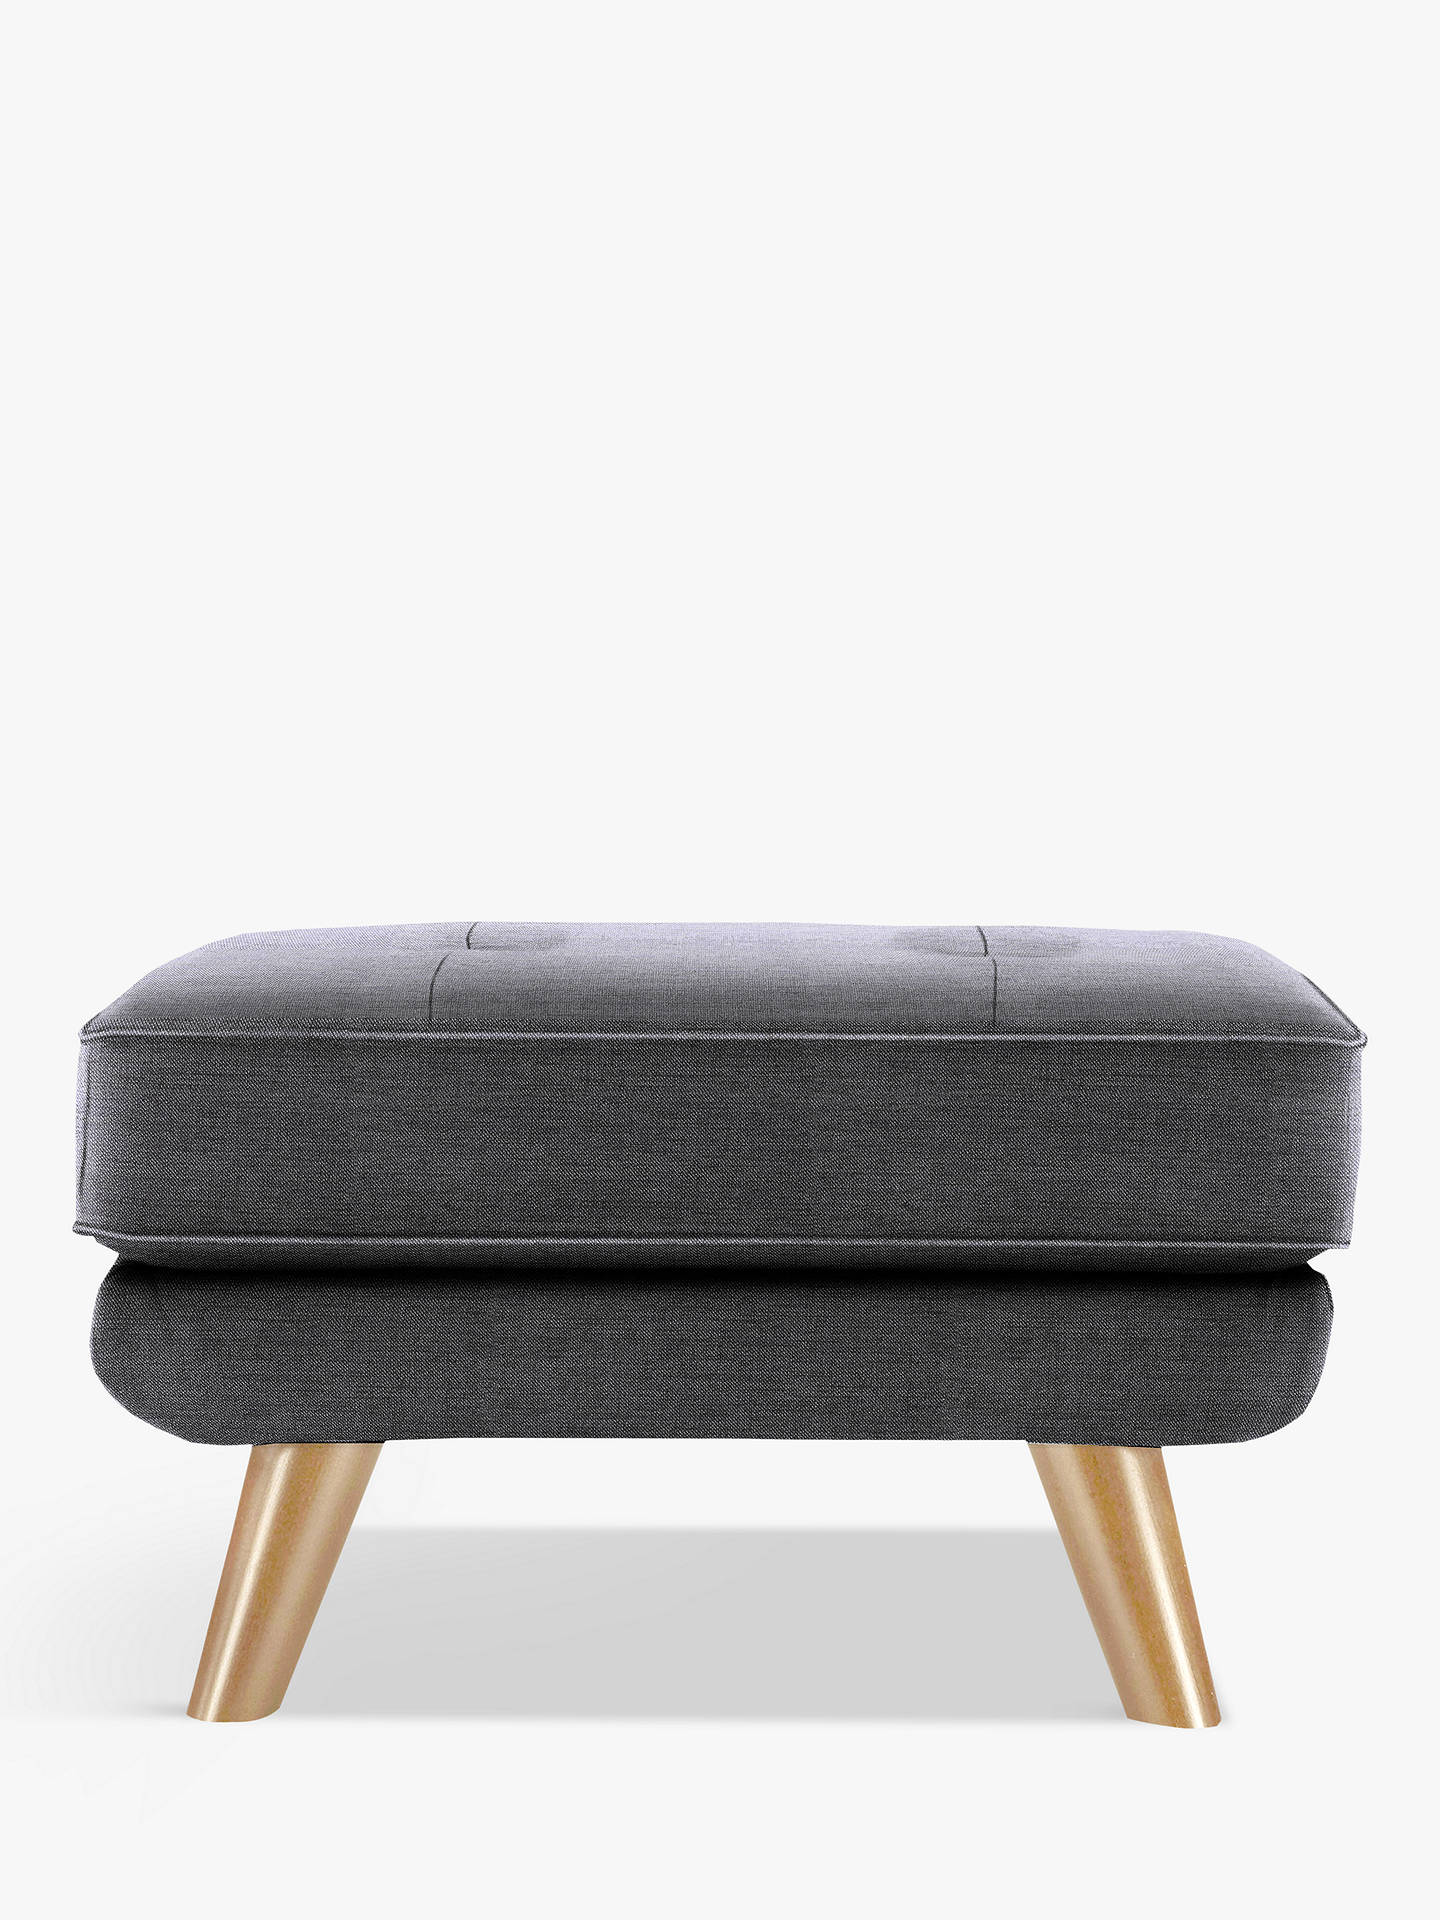 BuyG Plan Vintage The Fifty Three Footstool, Tonic Charcoal Online at johnlewis.com